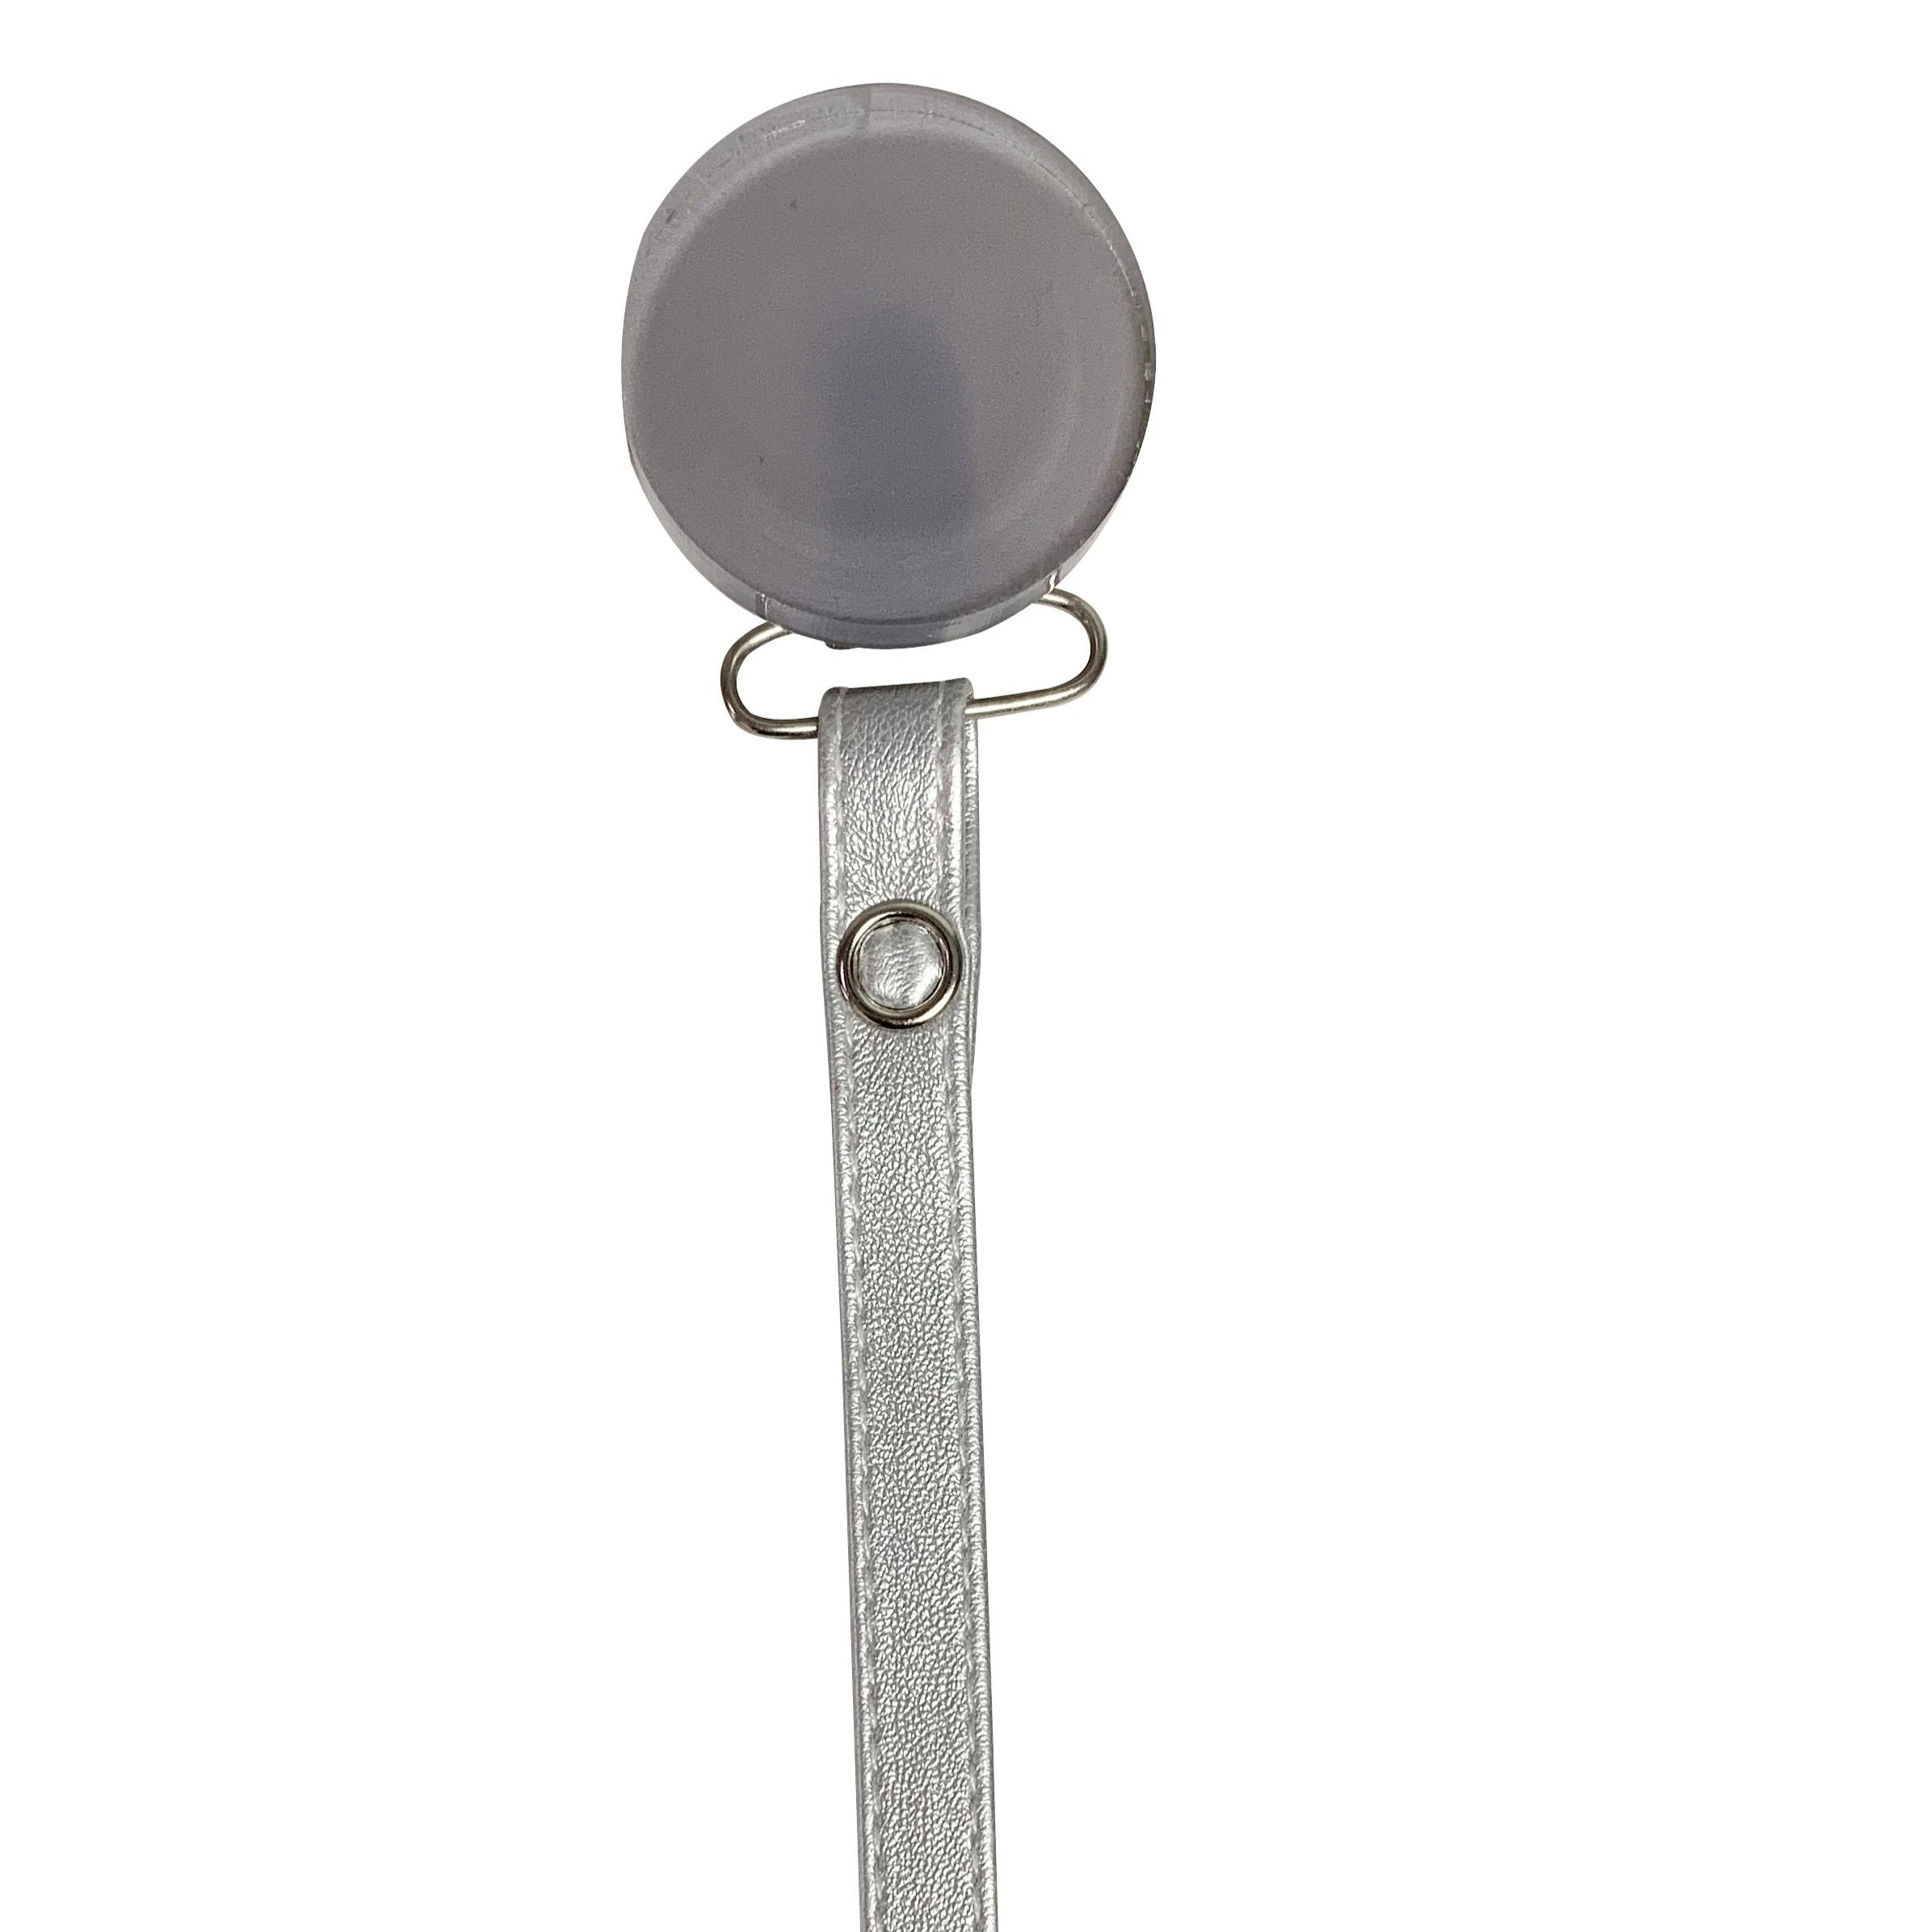 Classy Paci Sleek Grey Round clip with Bibs silver pacifier GIFT SET